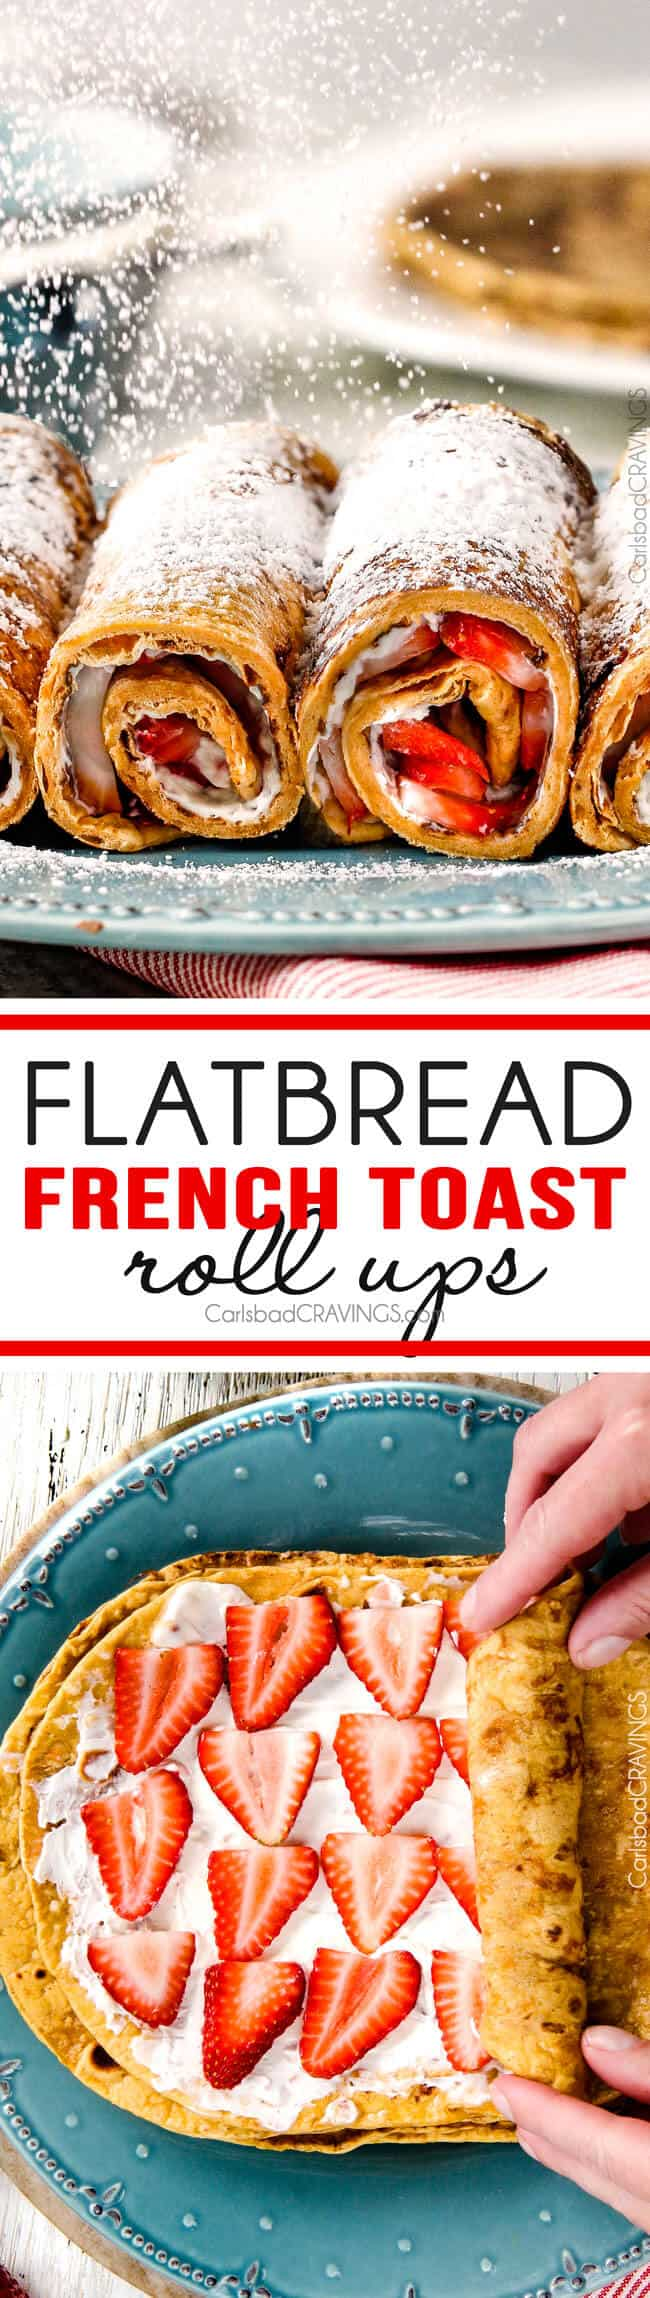 Flatbread French Toast Roll Ups - these taste like French Toast Crepes and literally took me minutes to make! The best French Toast ever!